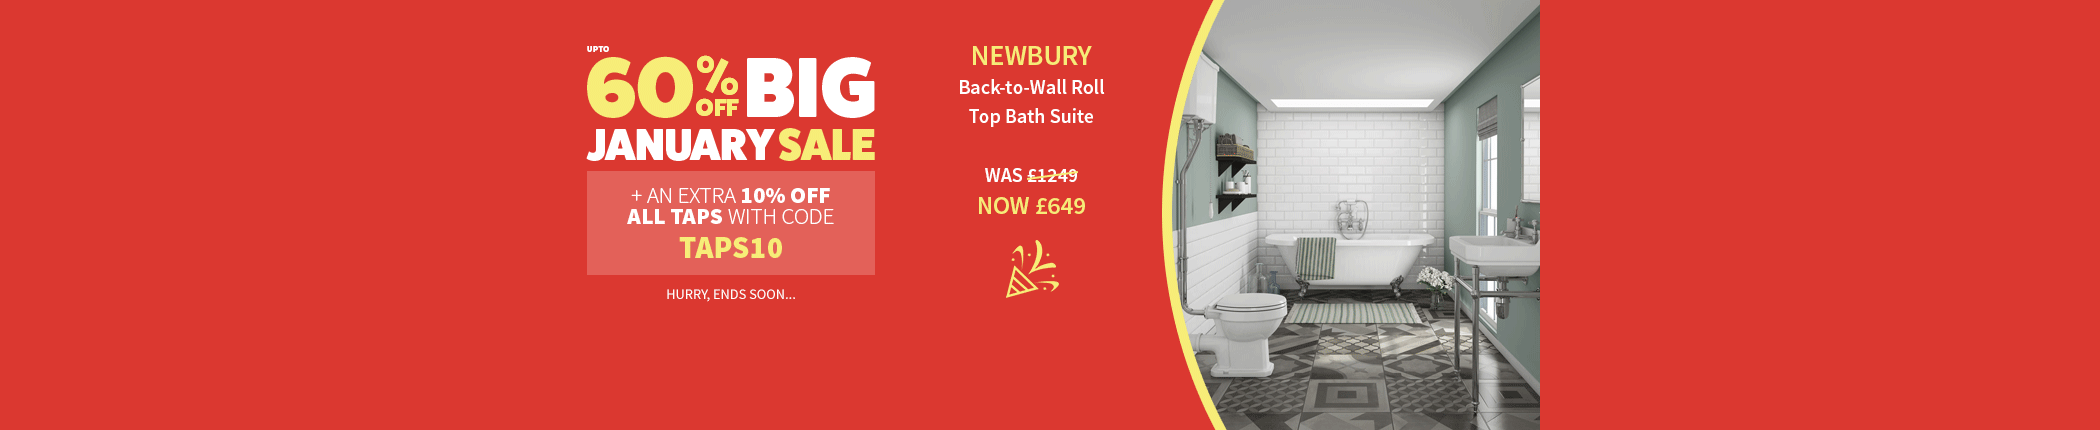 big-january-sale-all-taps-newbury-back-to-wall-roll-top-bath-suite-countdown-jan17-hbnr